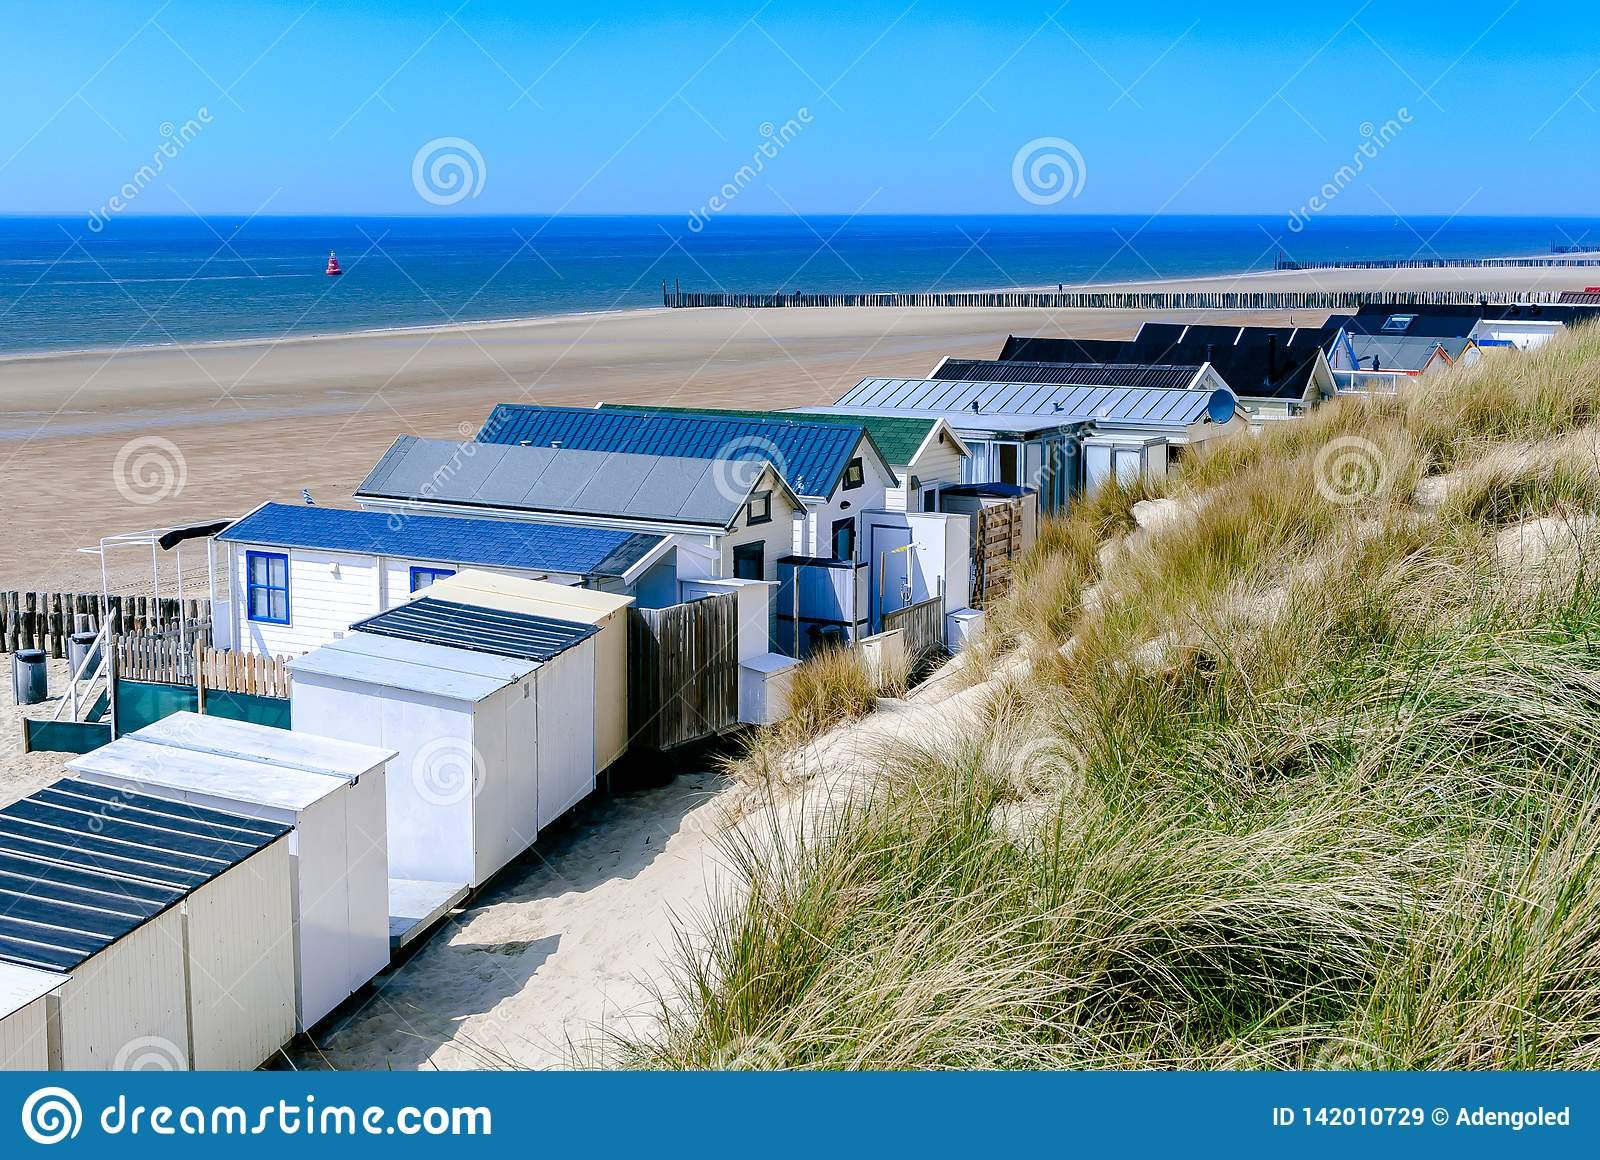 Coastal view with vacation homes, dunes, empty beach, blue sea and clear sky.